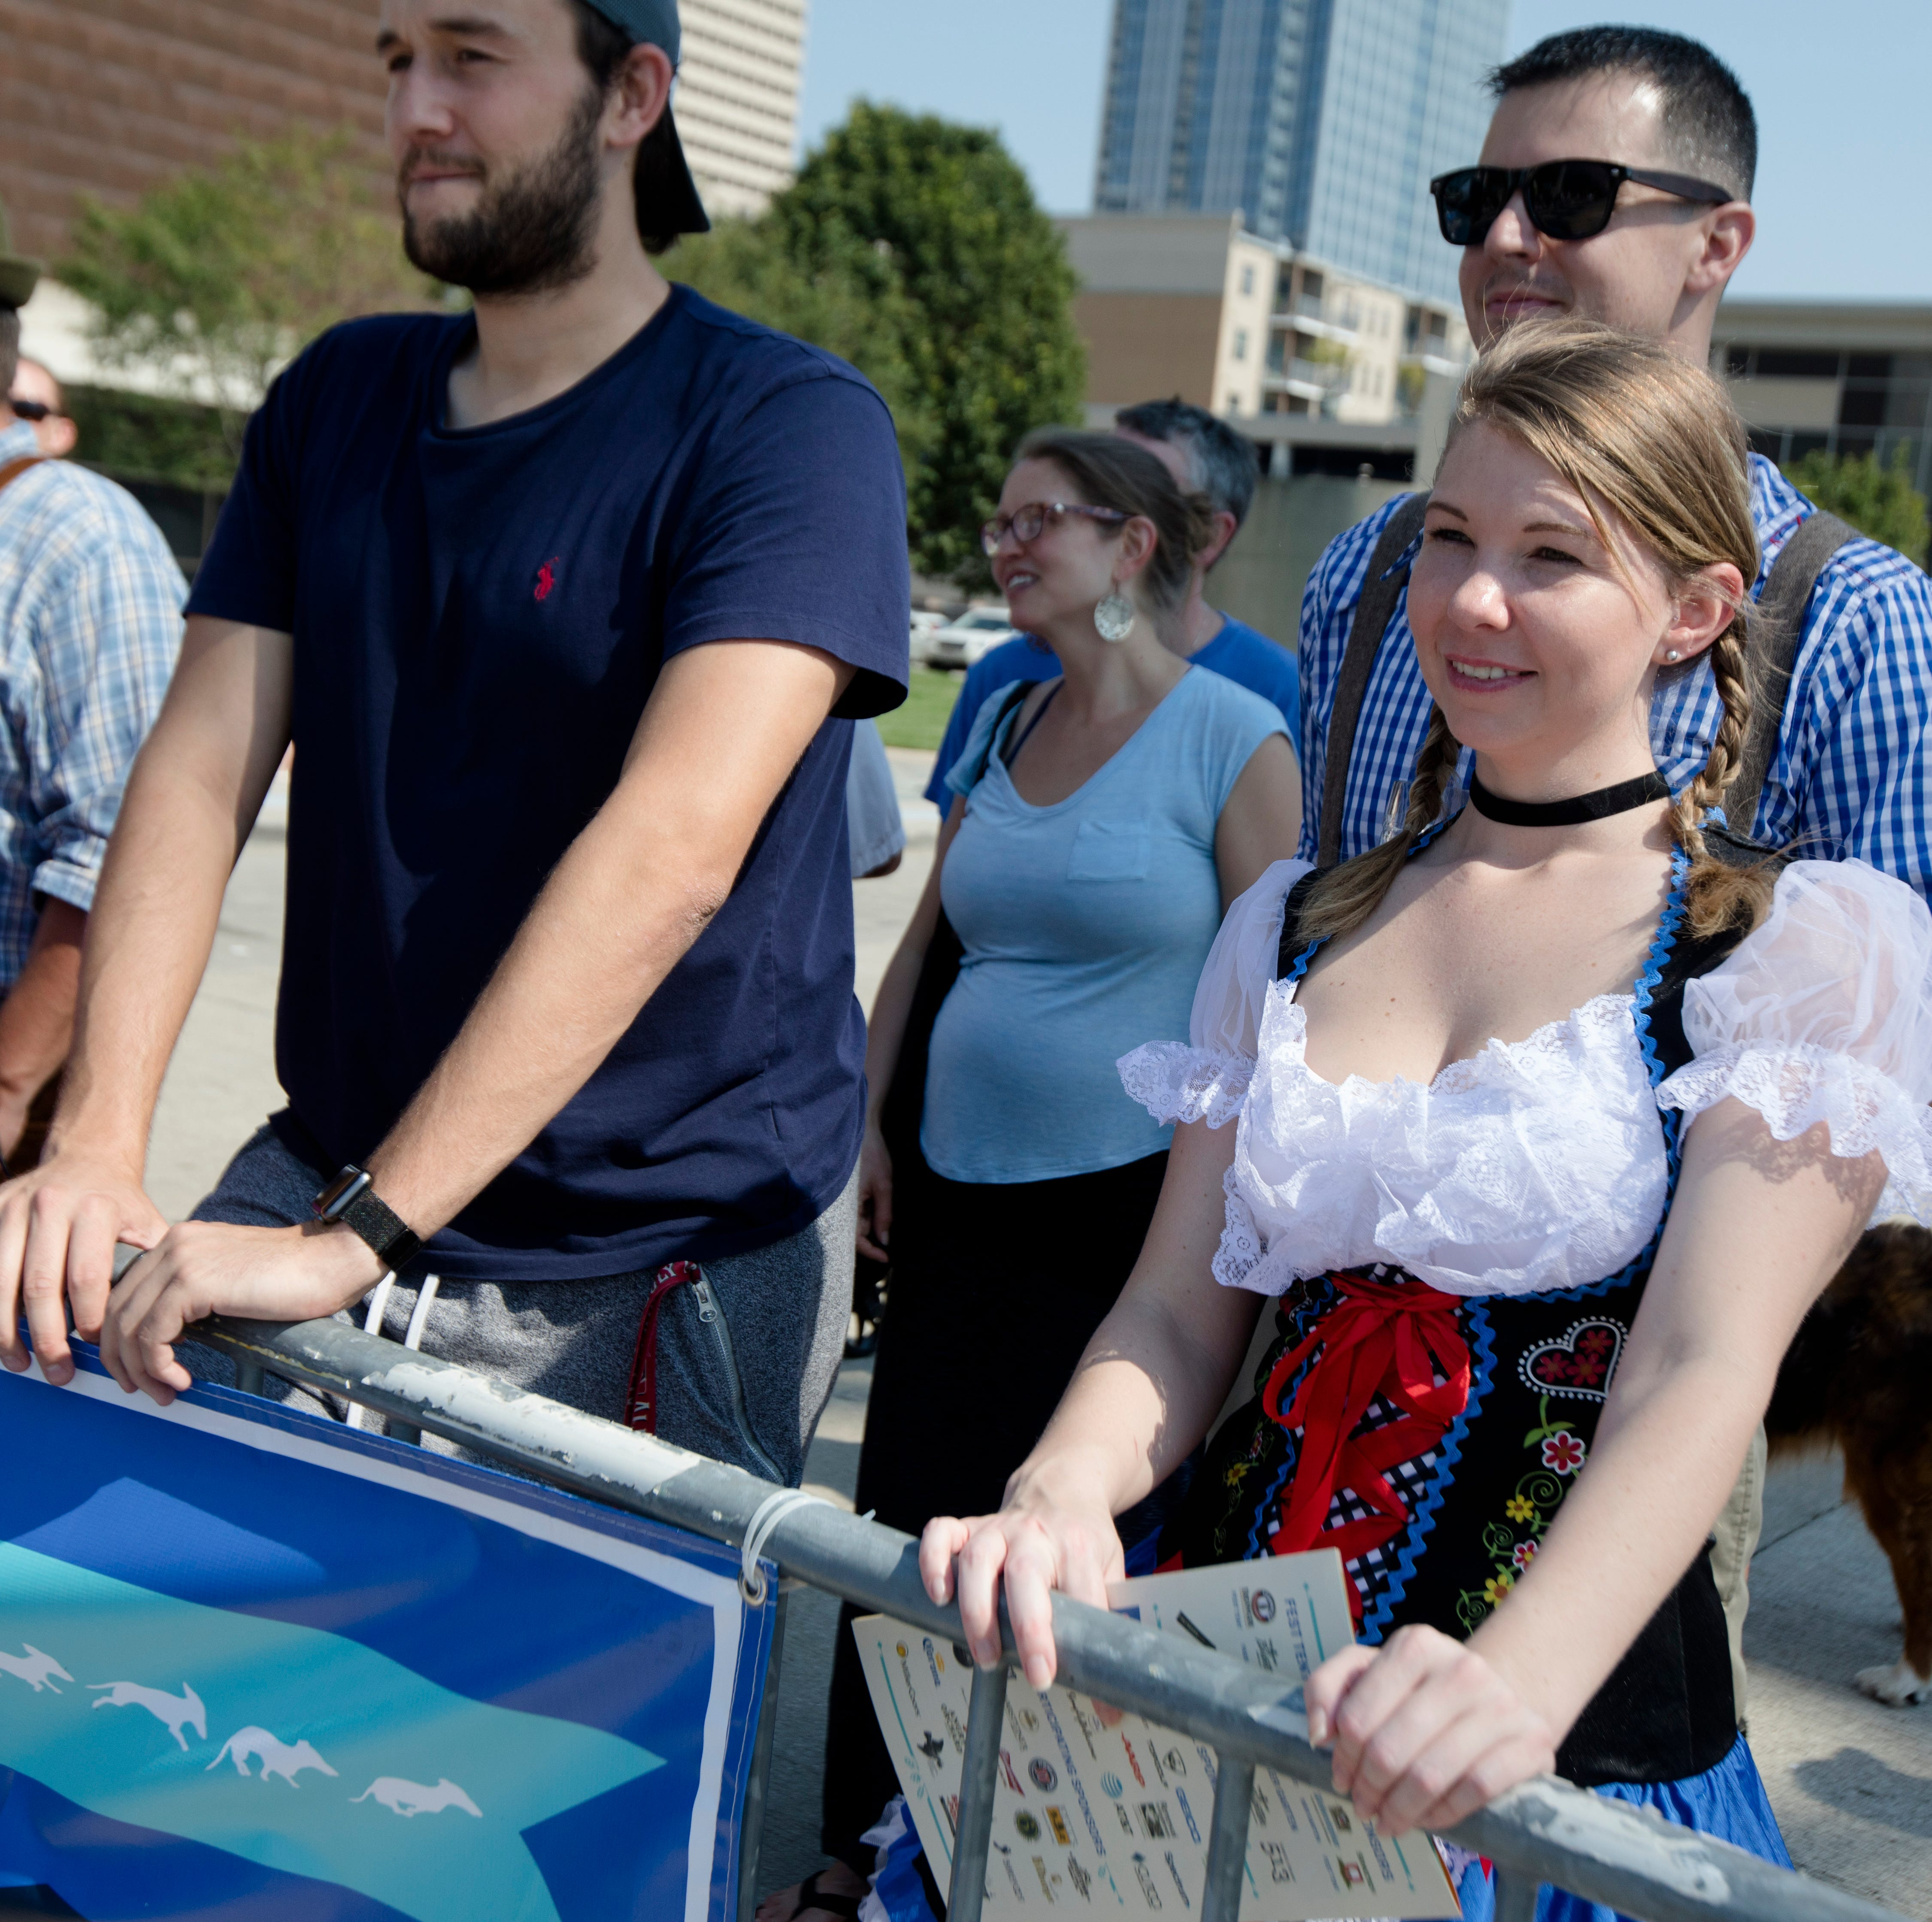 Oktoberfest weather outlook includes chance of showers, cooler temps